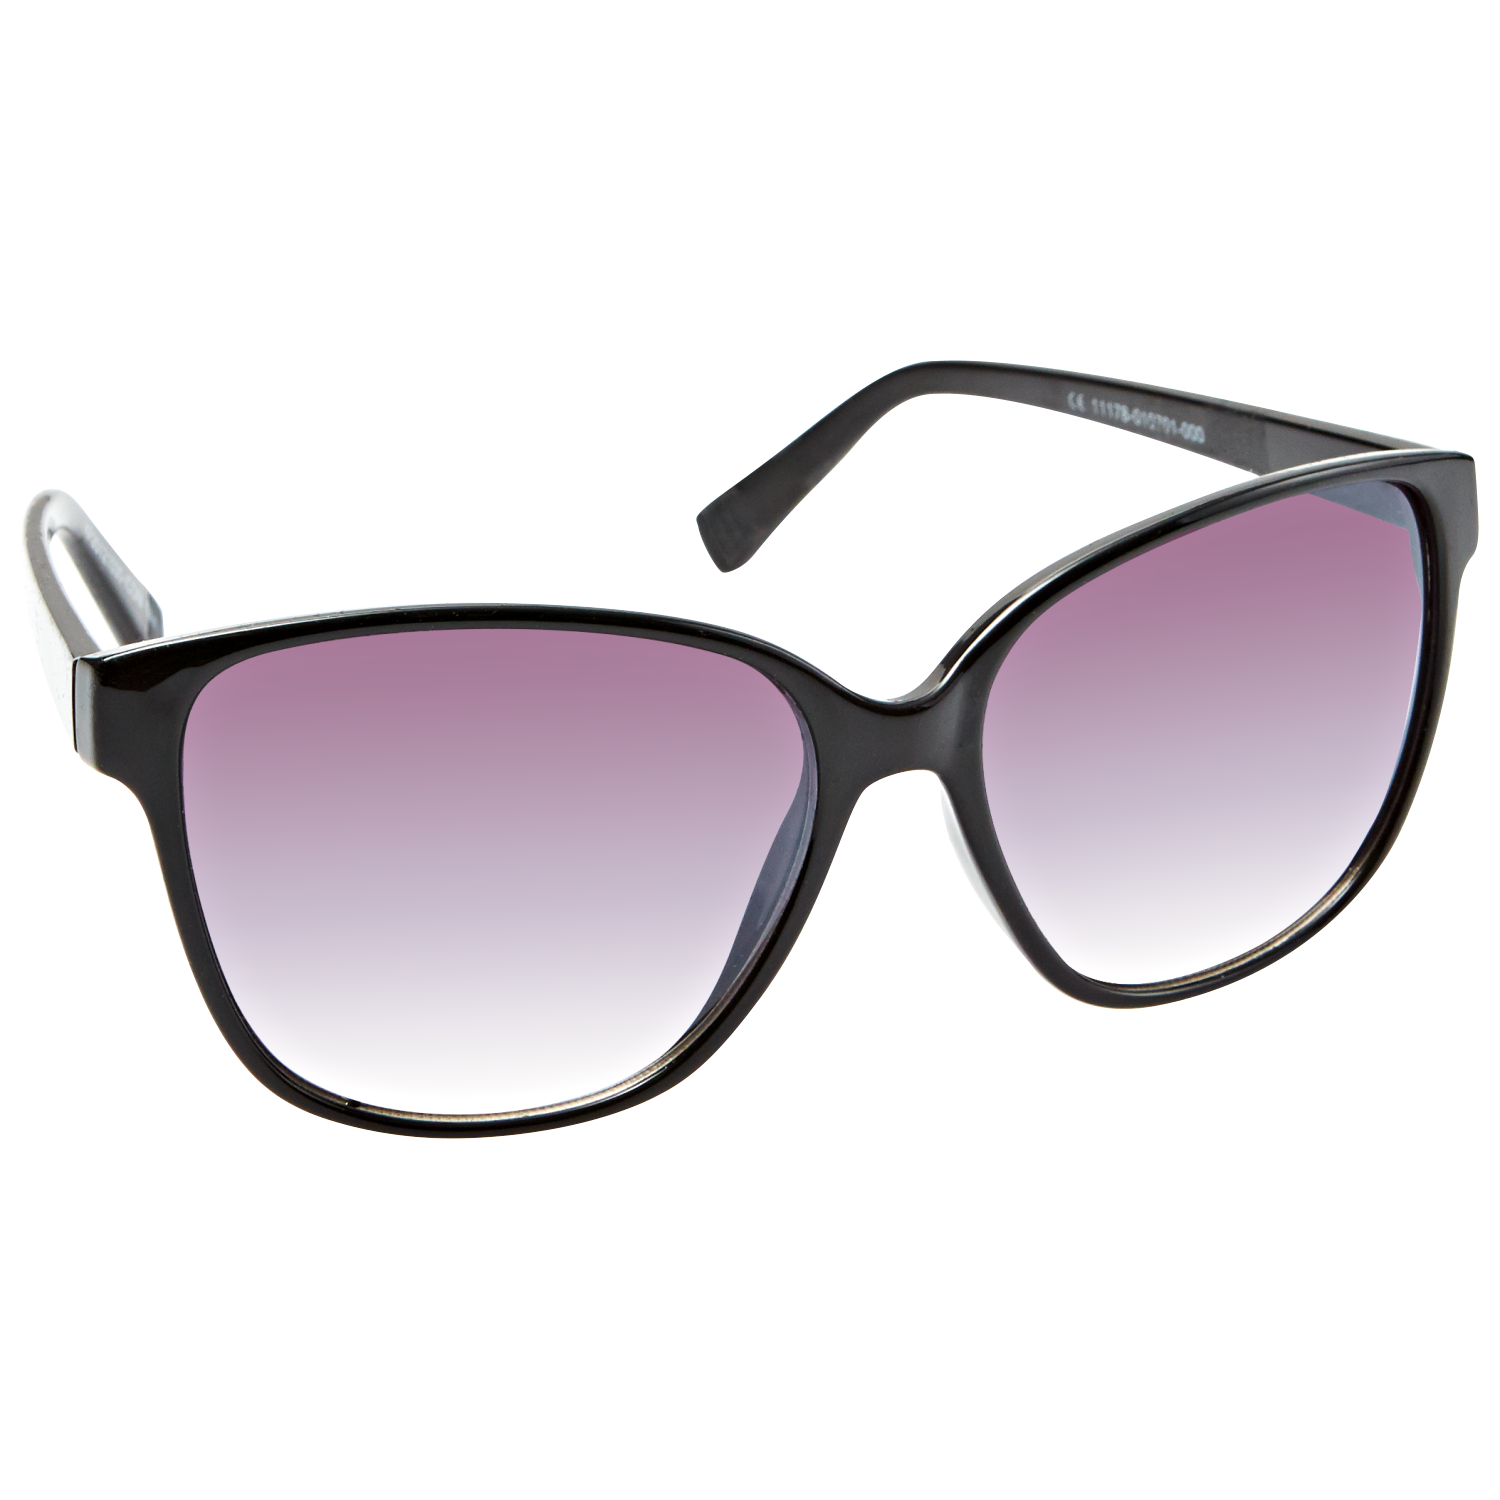 620372be1b37 Stylish Sunglasses Png Images Bitterroot Public Library